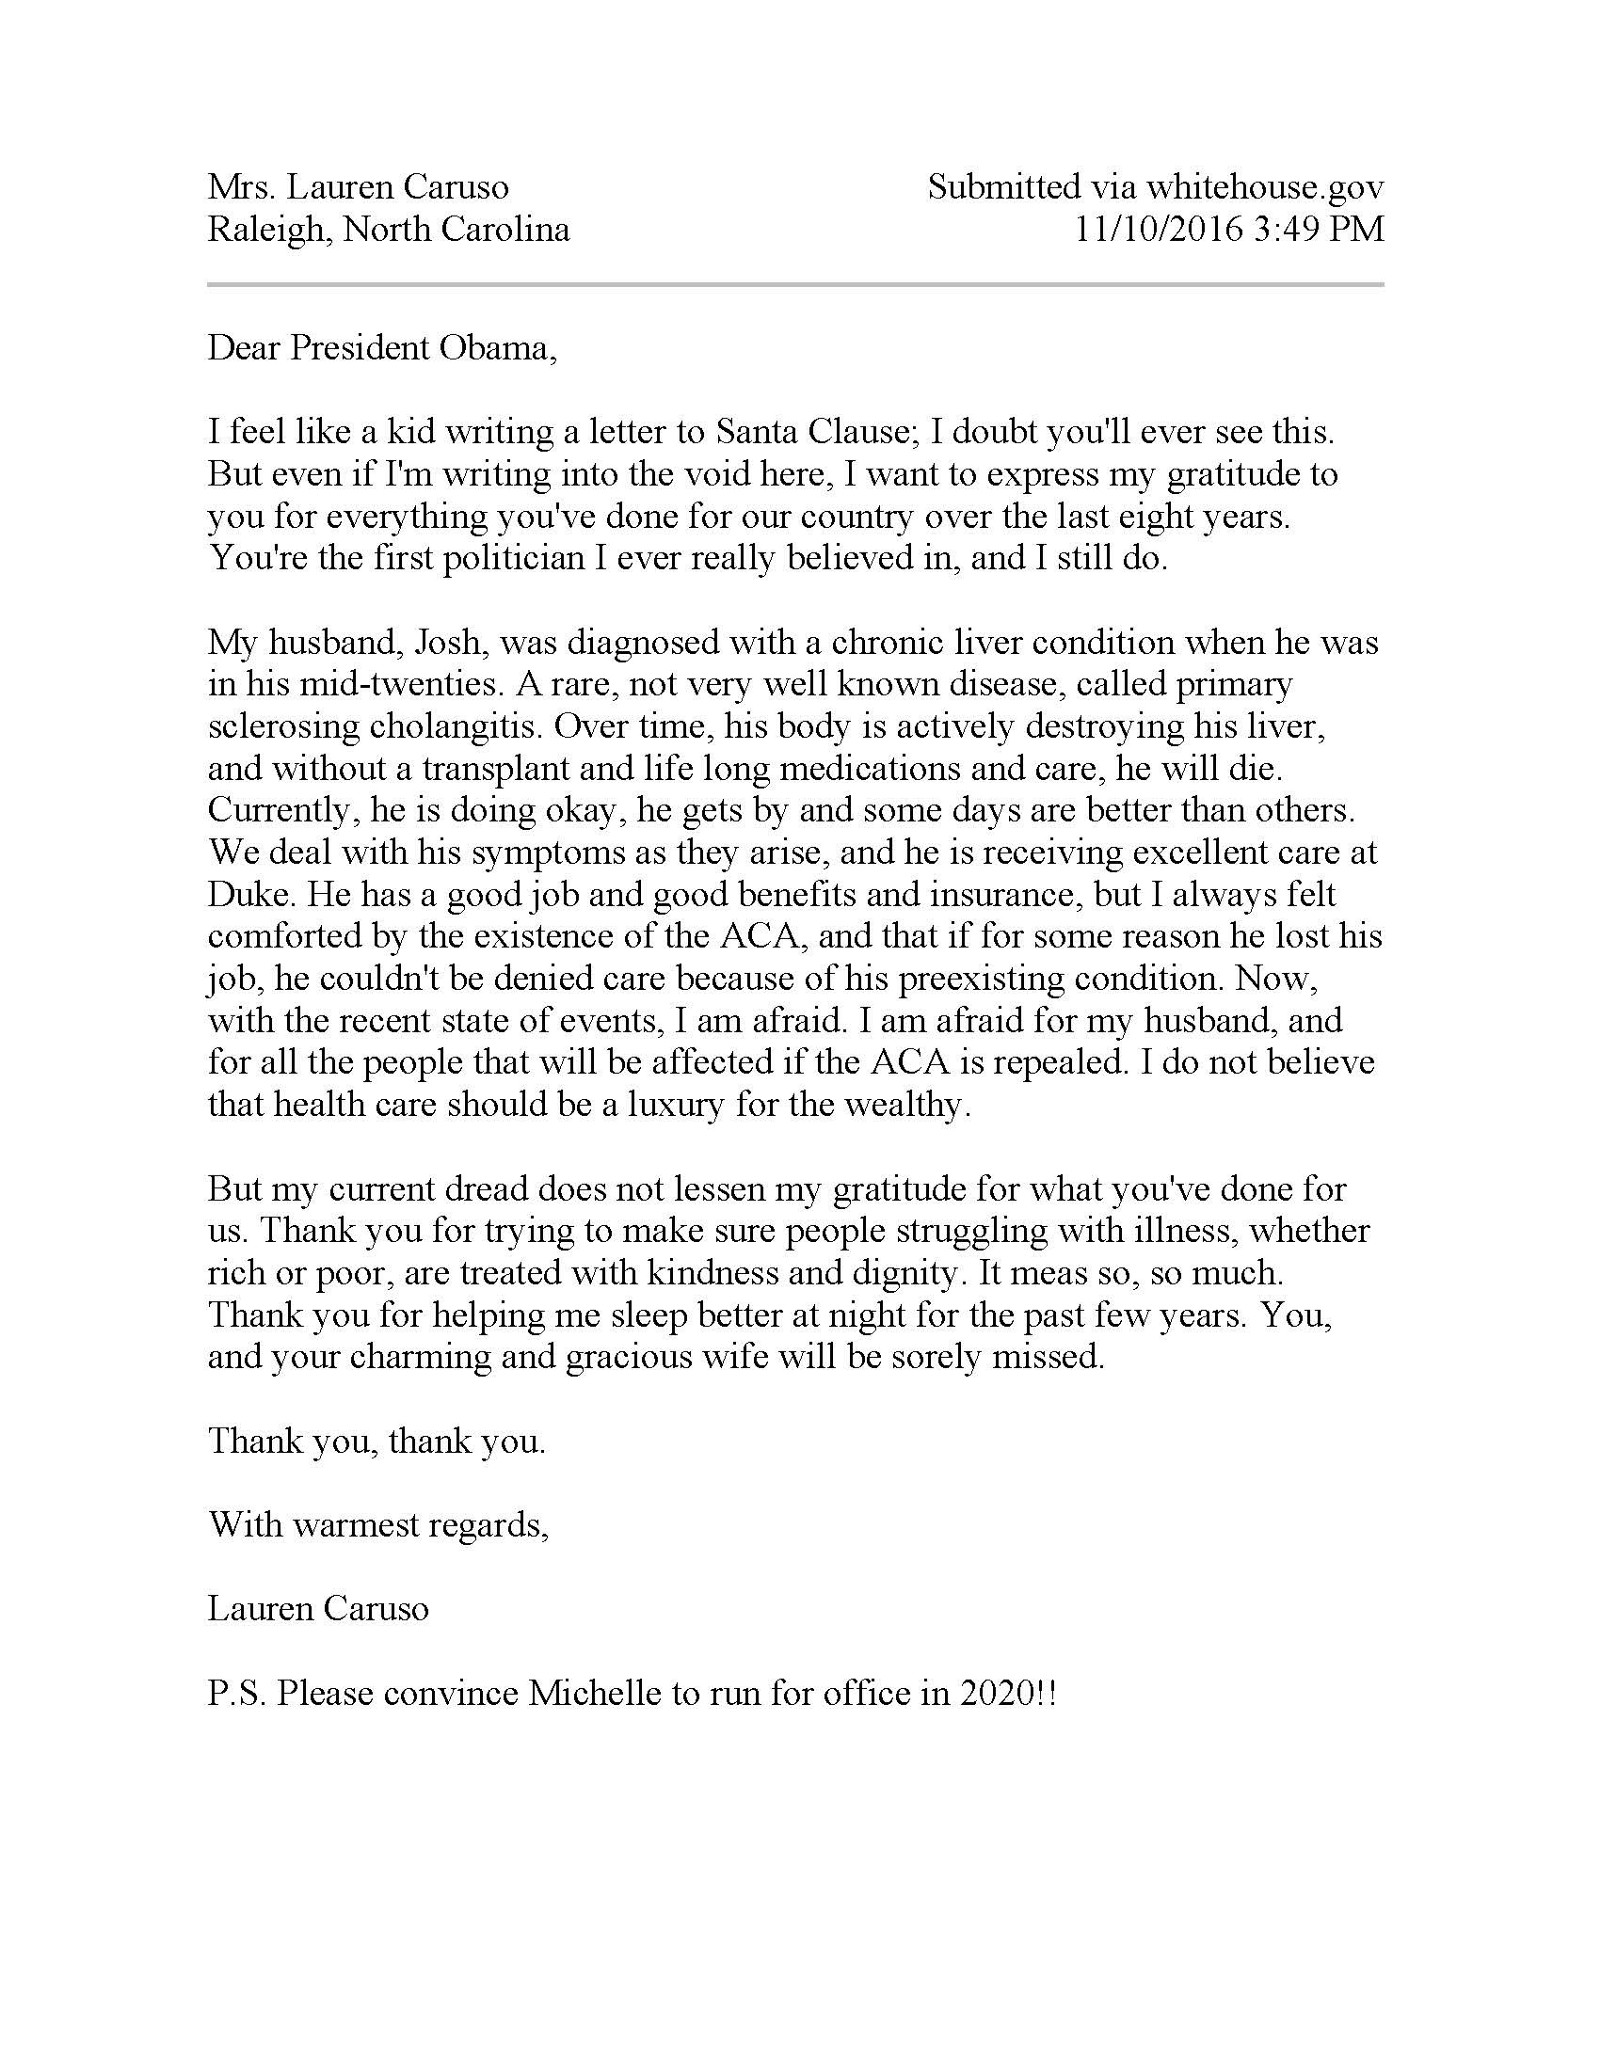 Asked and answered five letters on why affordable health coverage letter from lauren caruso i am afraid for my husband and for all the people that will be affected if the aca is repealed aljukfo Gallery